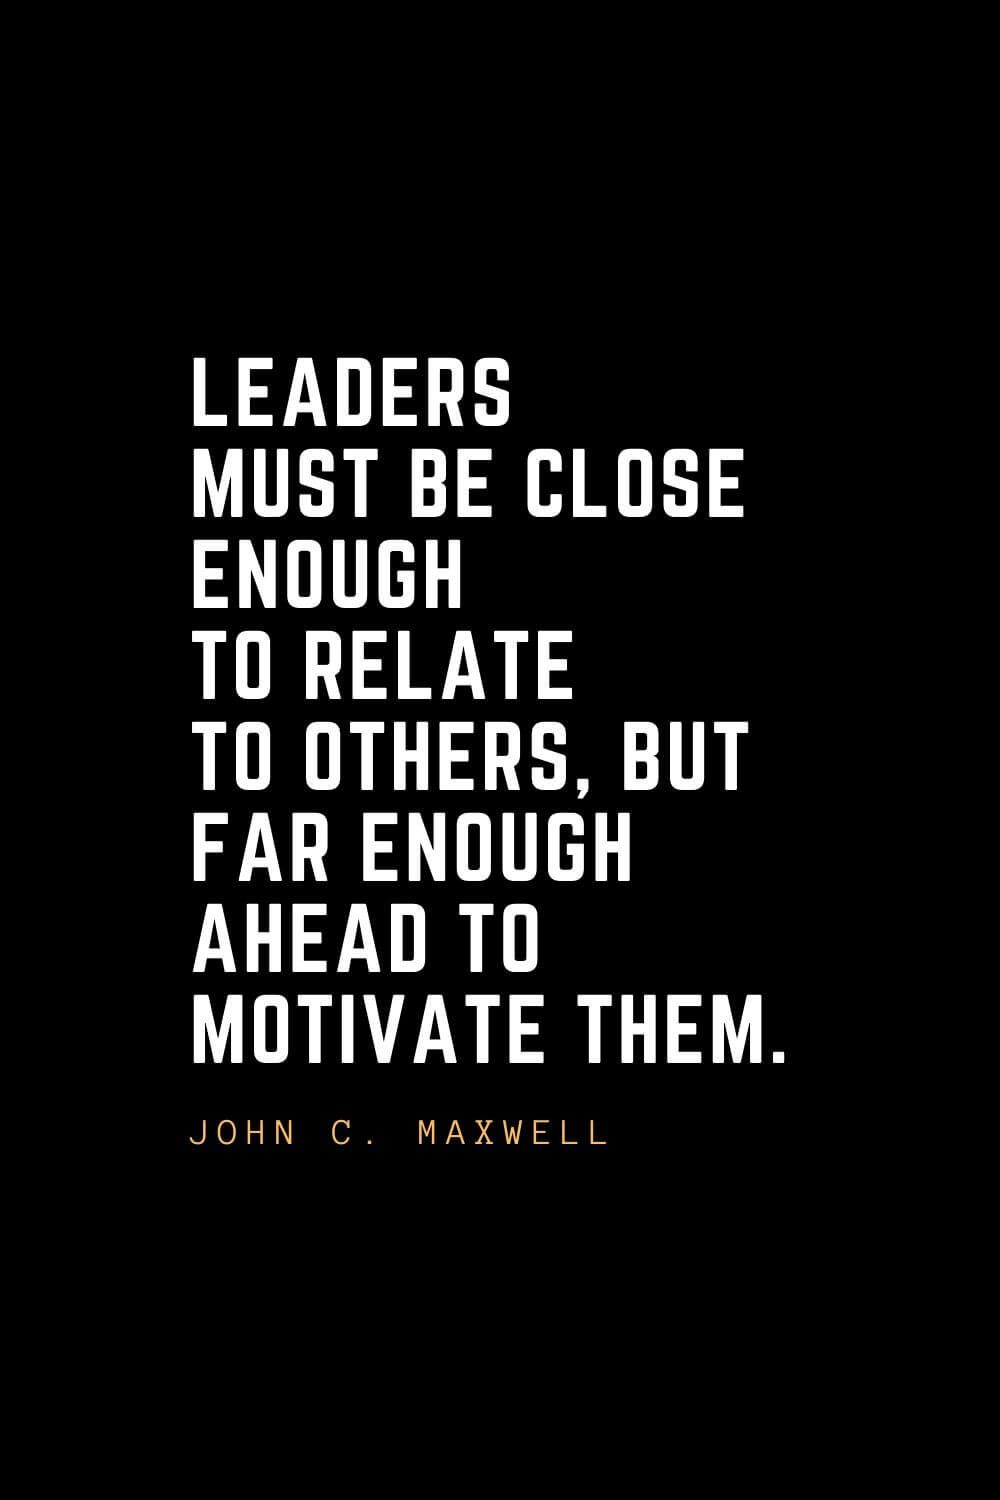 100 Famous and Inspiring Leadership Quotes